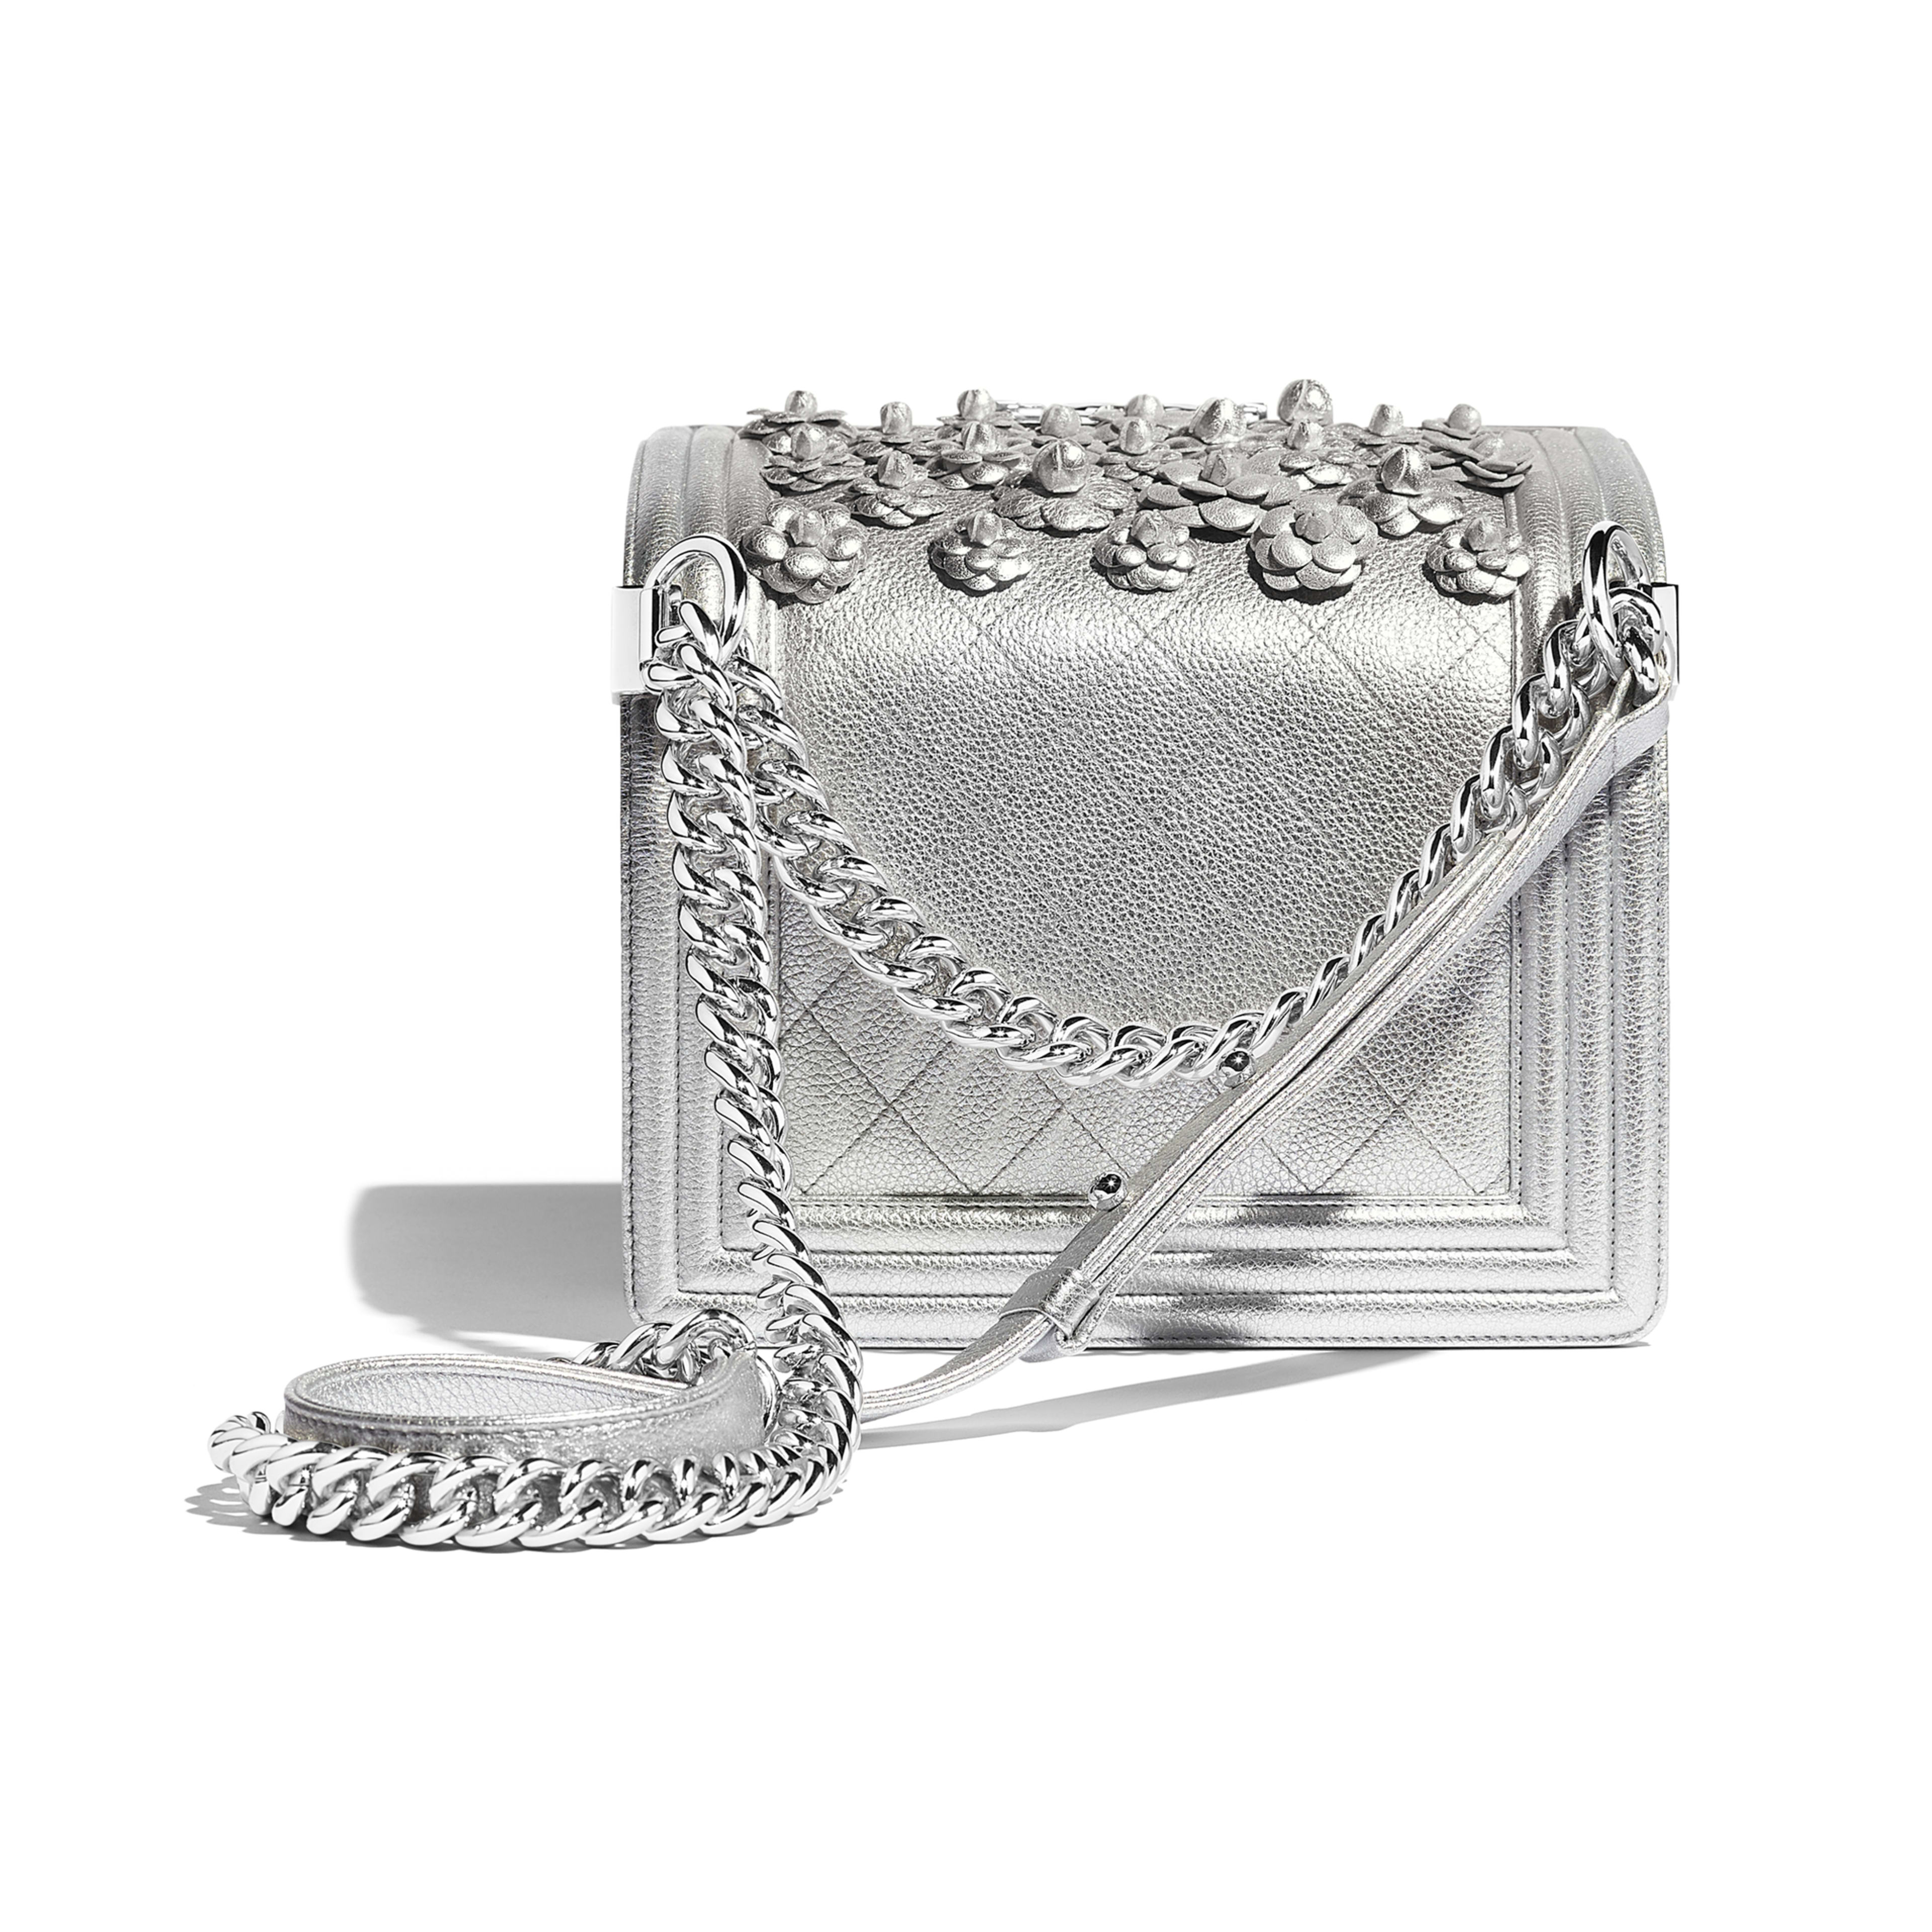 Small BOY CHANEL Handbag - Silver - Embroidered Metallic Grained Calfskin & Silver-Tone Metal - Other view - see full sized version